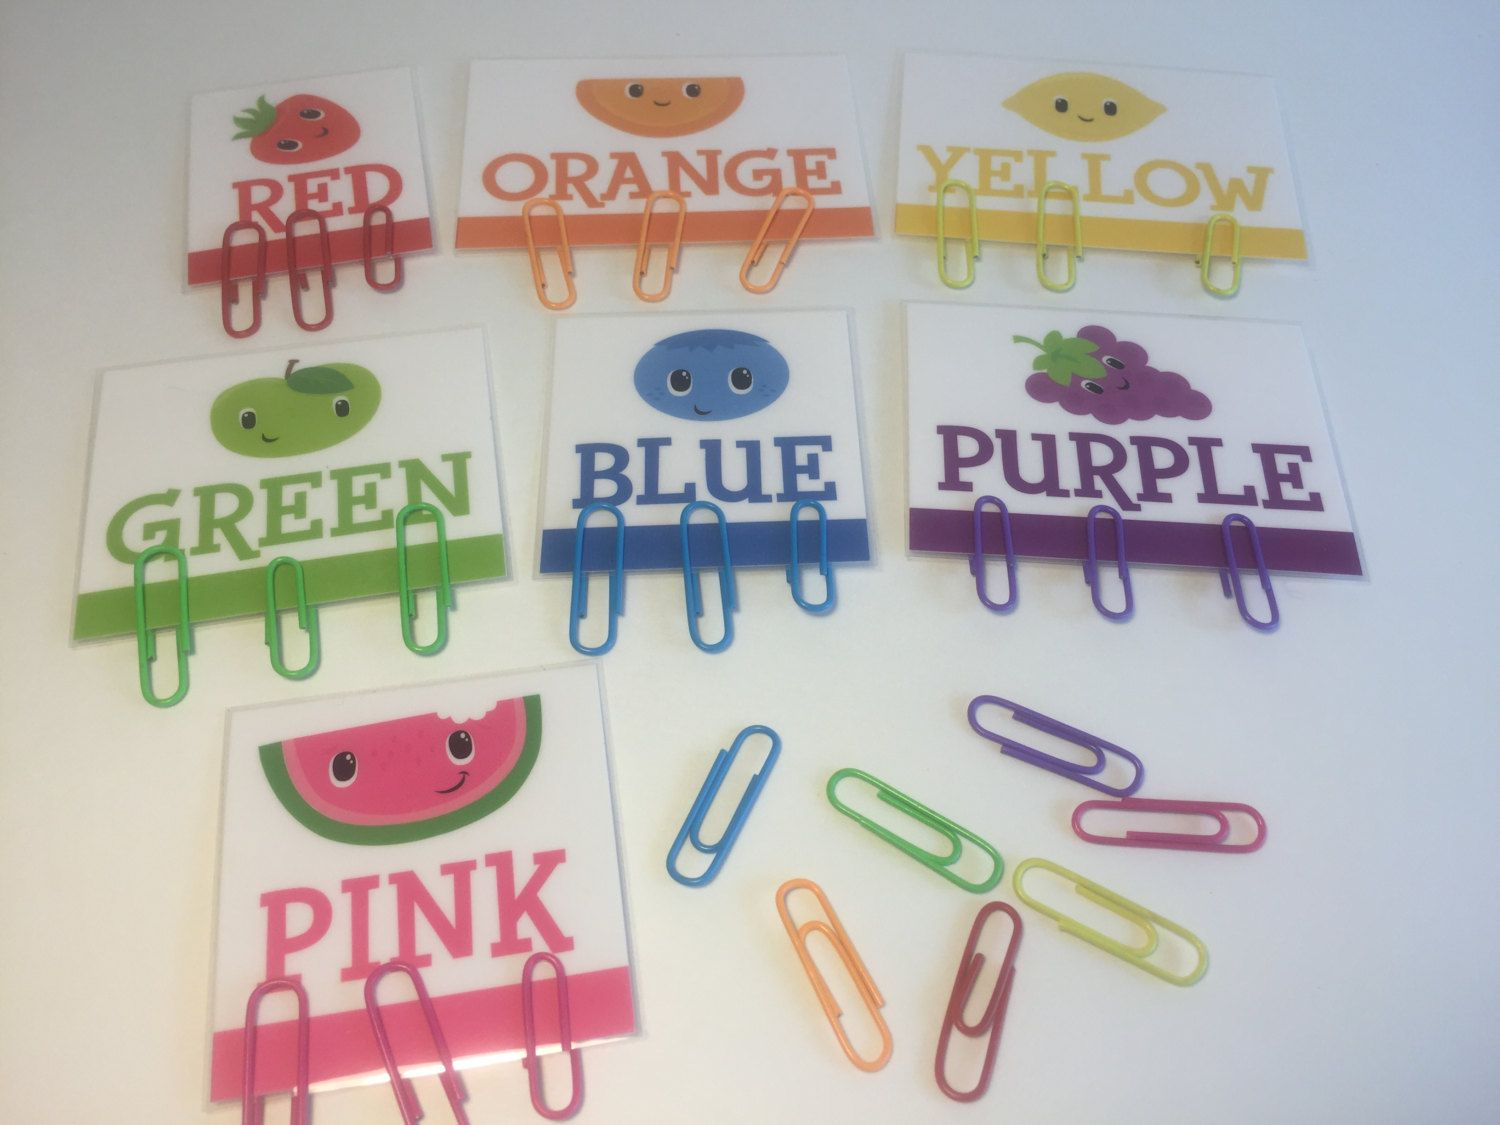 Paperclip Color Matching, Color Learning Busy Bag, Montessori, Montessori Toddler, Preschool Learning, Montessori Activity, Toddler Activity by busybagFUN on Etsy